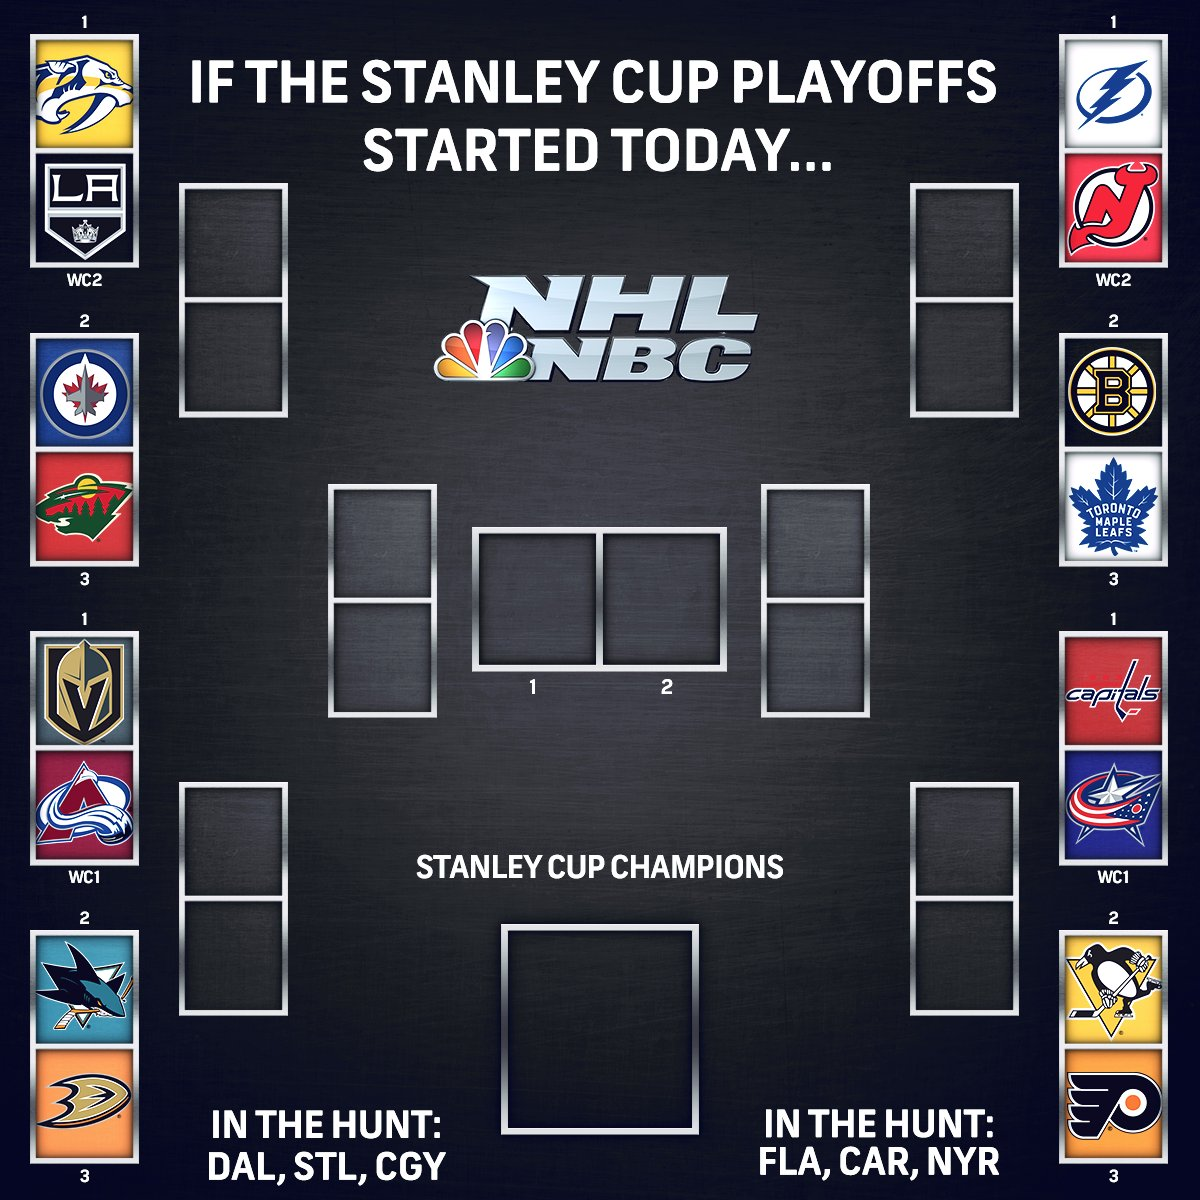 HAPPY MONDAY here's the current playoff picture! 🤩